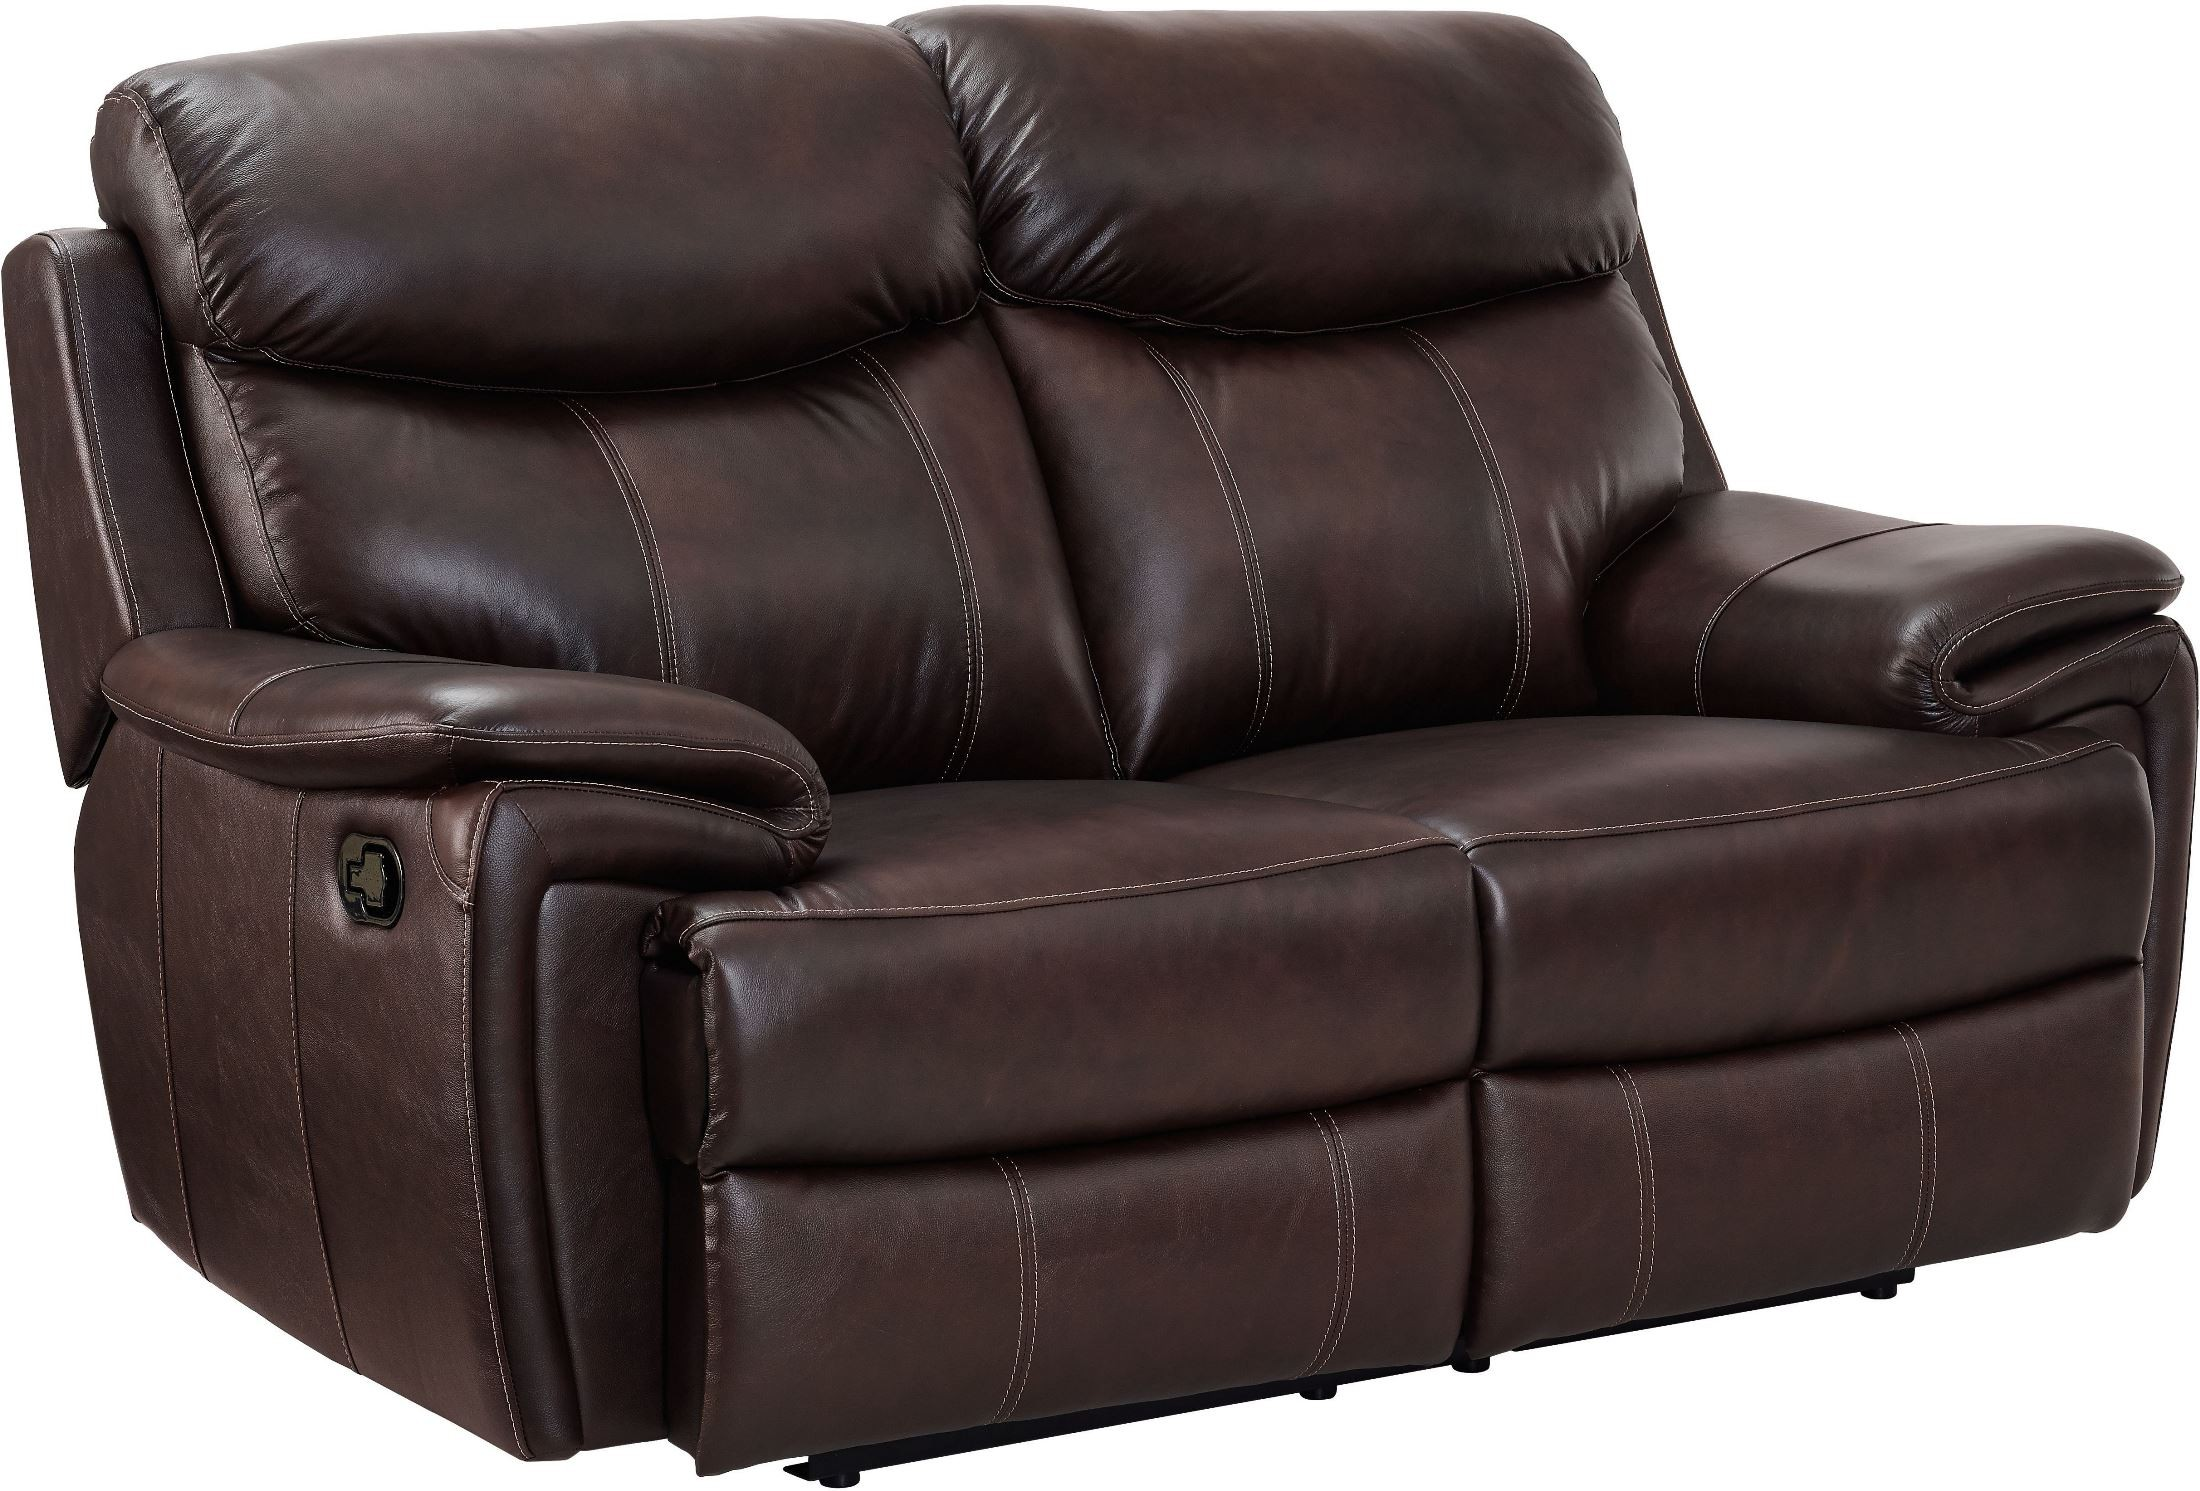 Aria Matte Brown Reclining Loveseat From New Classic Coleman Furniture